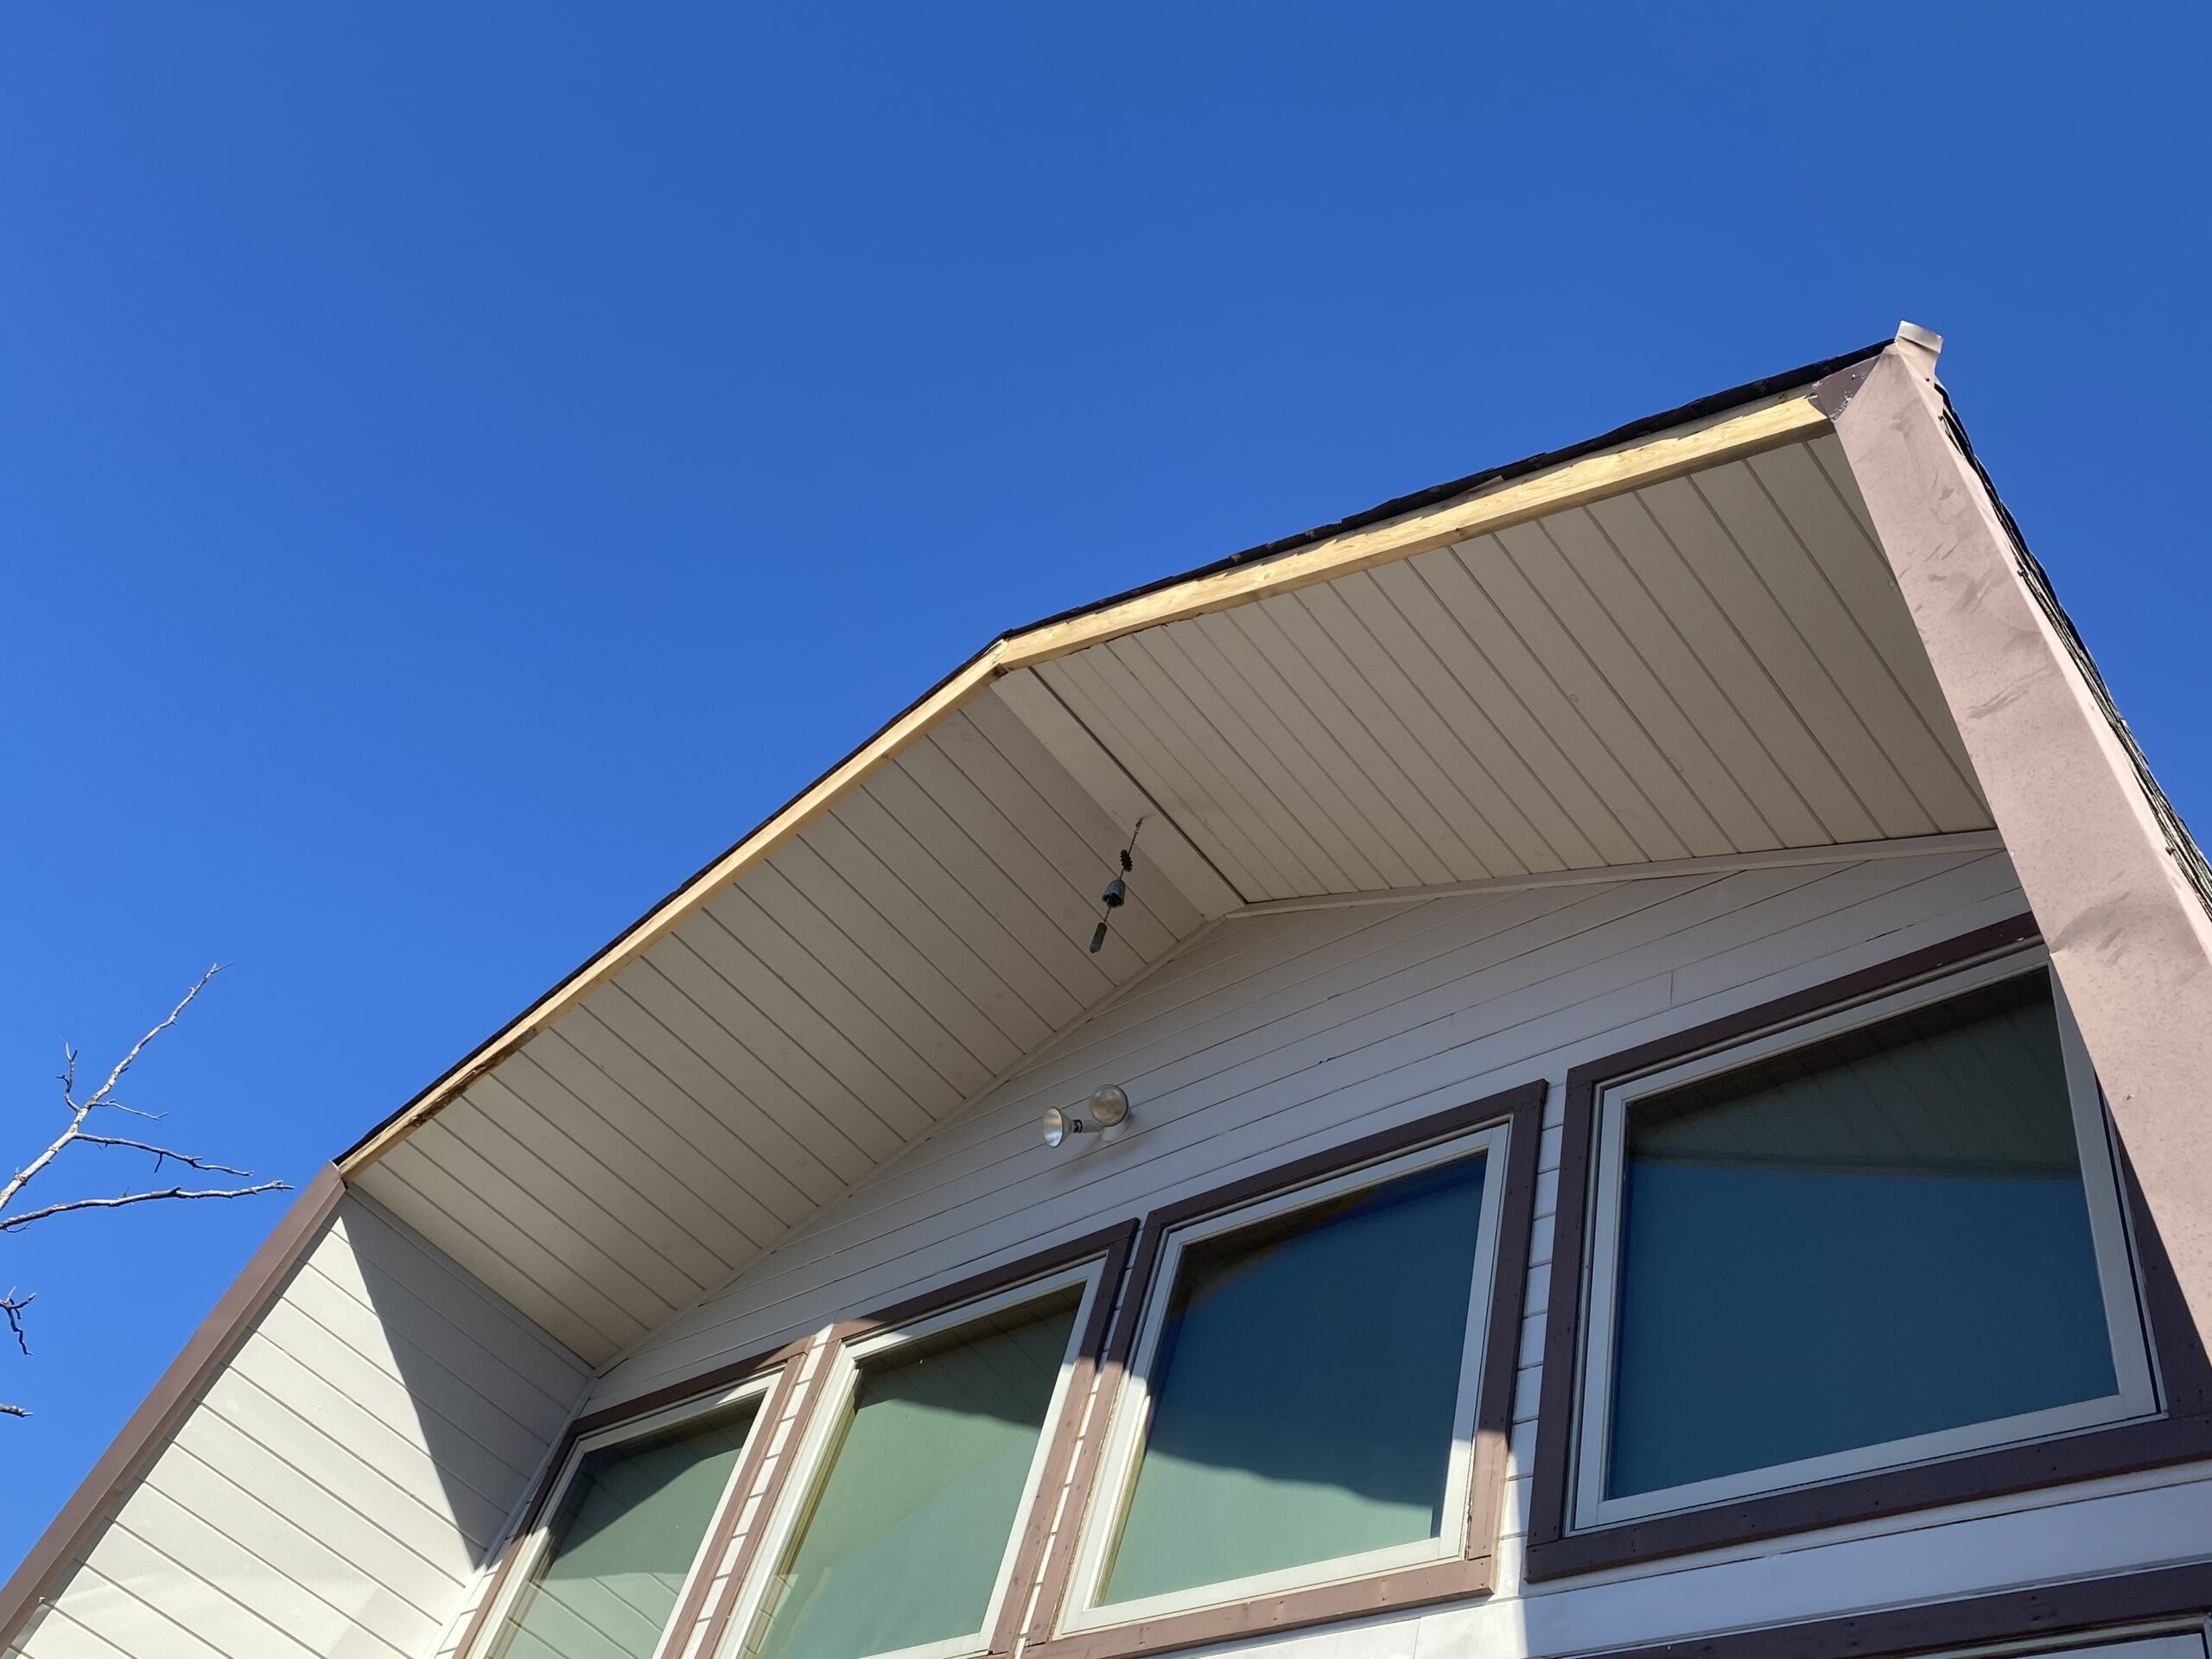 This is a picture of an A frame house that has fascia metal missing